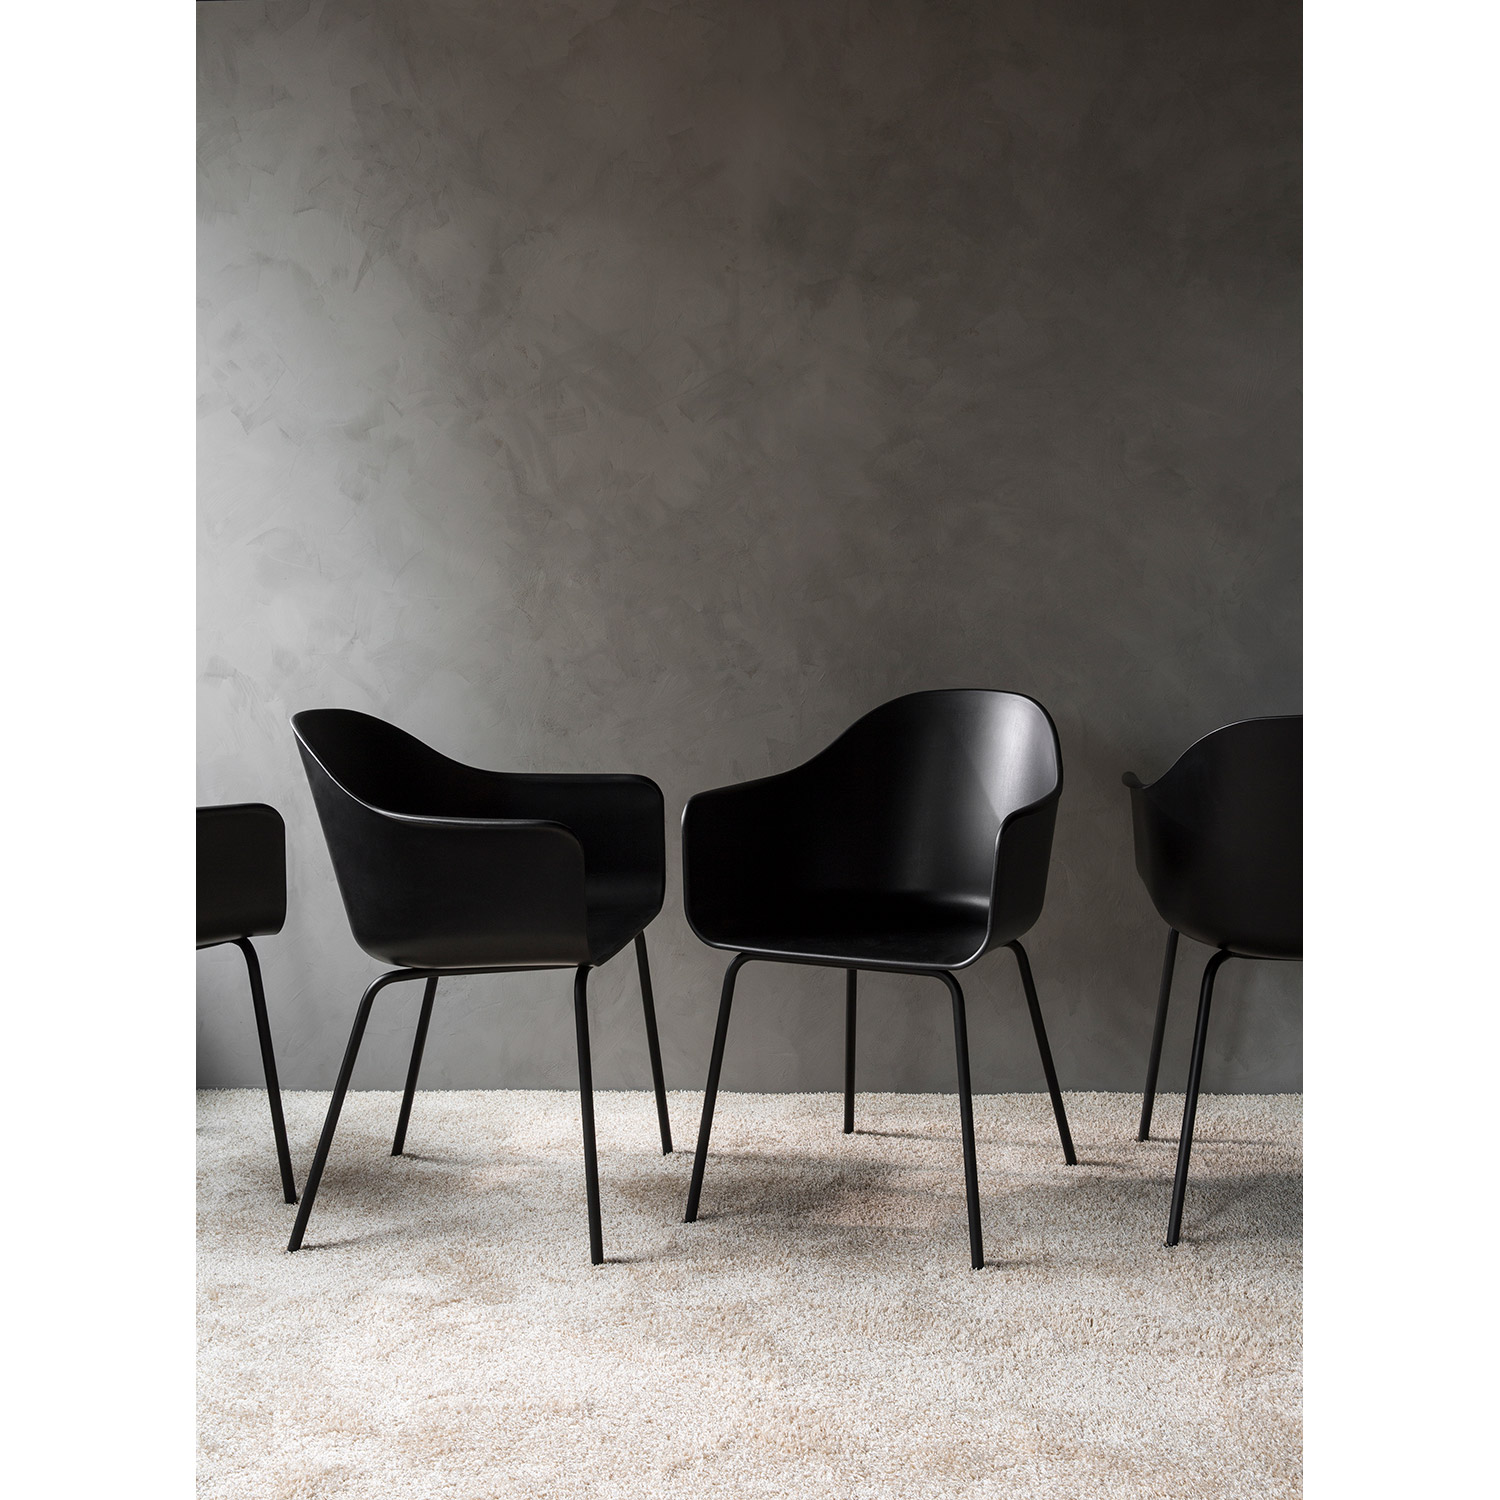 Harbour Chair 4-pack, svart/svart